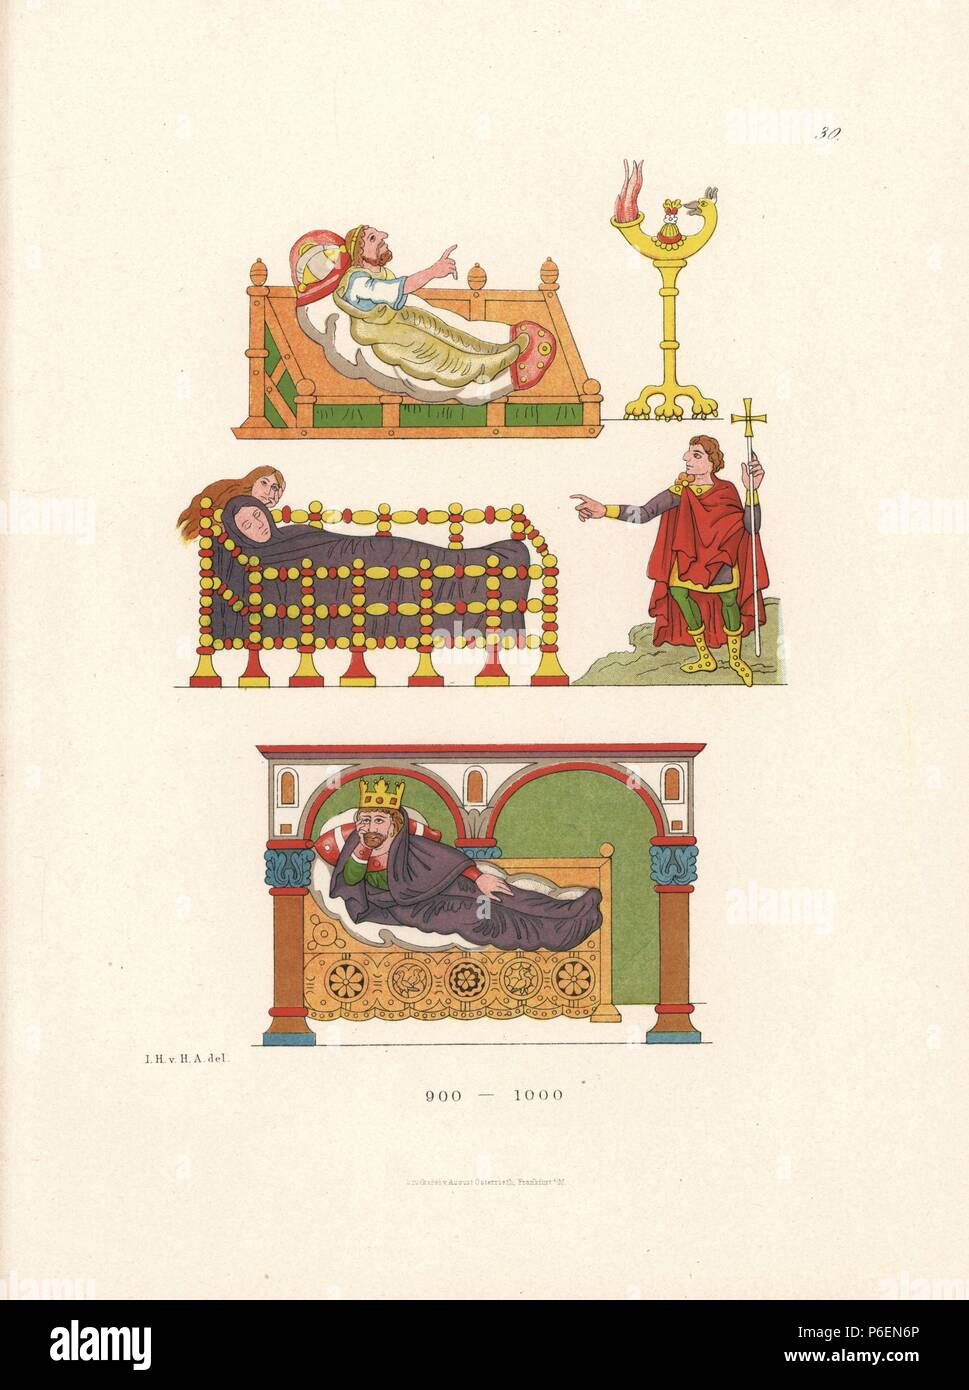 "Bedridden figures (including King David on a day bed below) illustrating the Psalms from an illuminated psalter on parchment in Stuttgart library, 10th century. Chromolithograph from Hefner-Alteneck's ""Costumes, Artworks and Appliances from the Middle Ages to the 17th Century,"" Frankfurt, 1879. Illustration by Dr. Jakob Heinrich von Hefner-Alteneck and published by Heinrich Keller. Hefner-Alteneck (1811 - 1903) was a German museum curator, archaeologist, art historian, illustrator and etcher. Stock Photo"